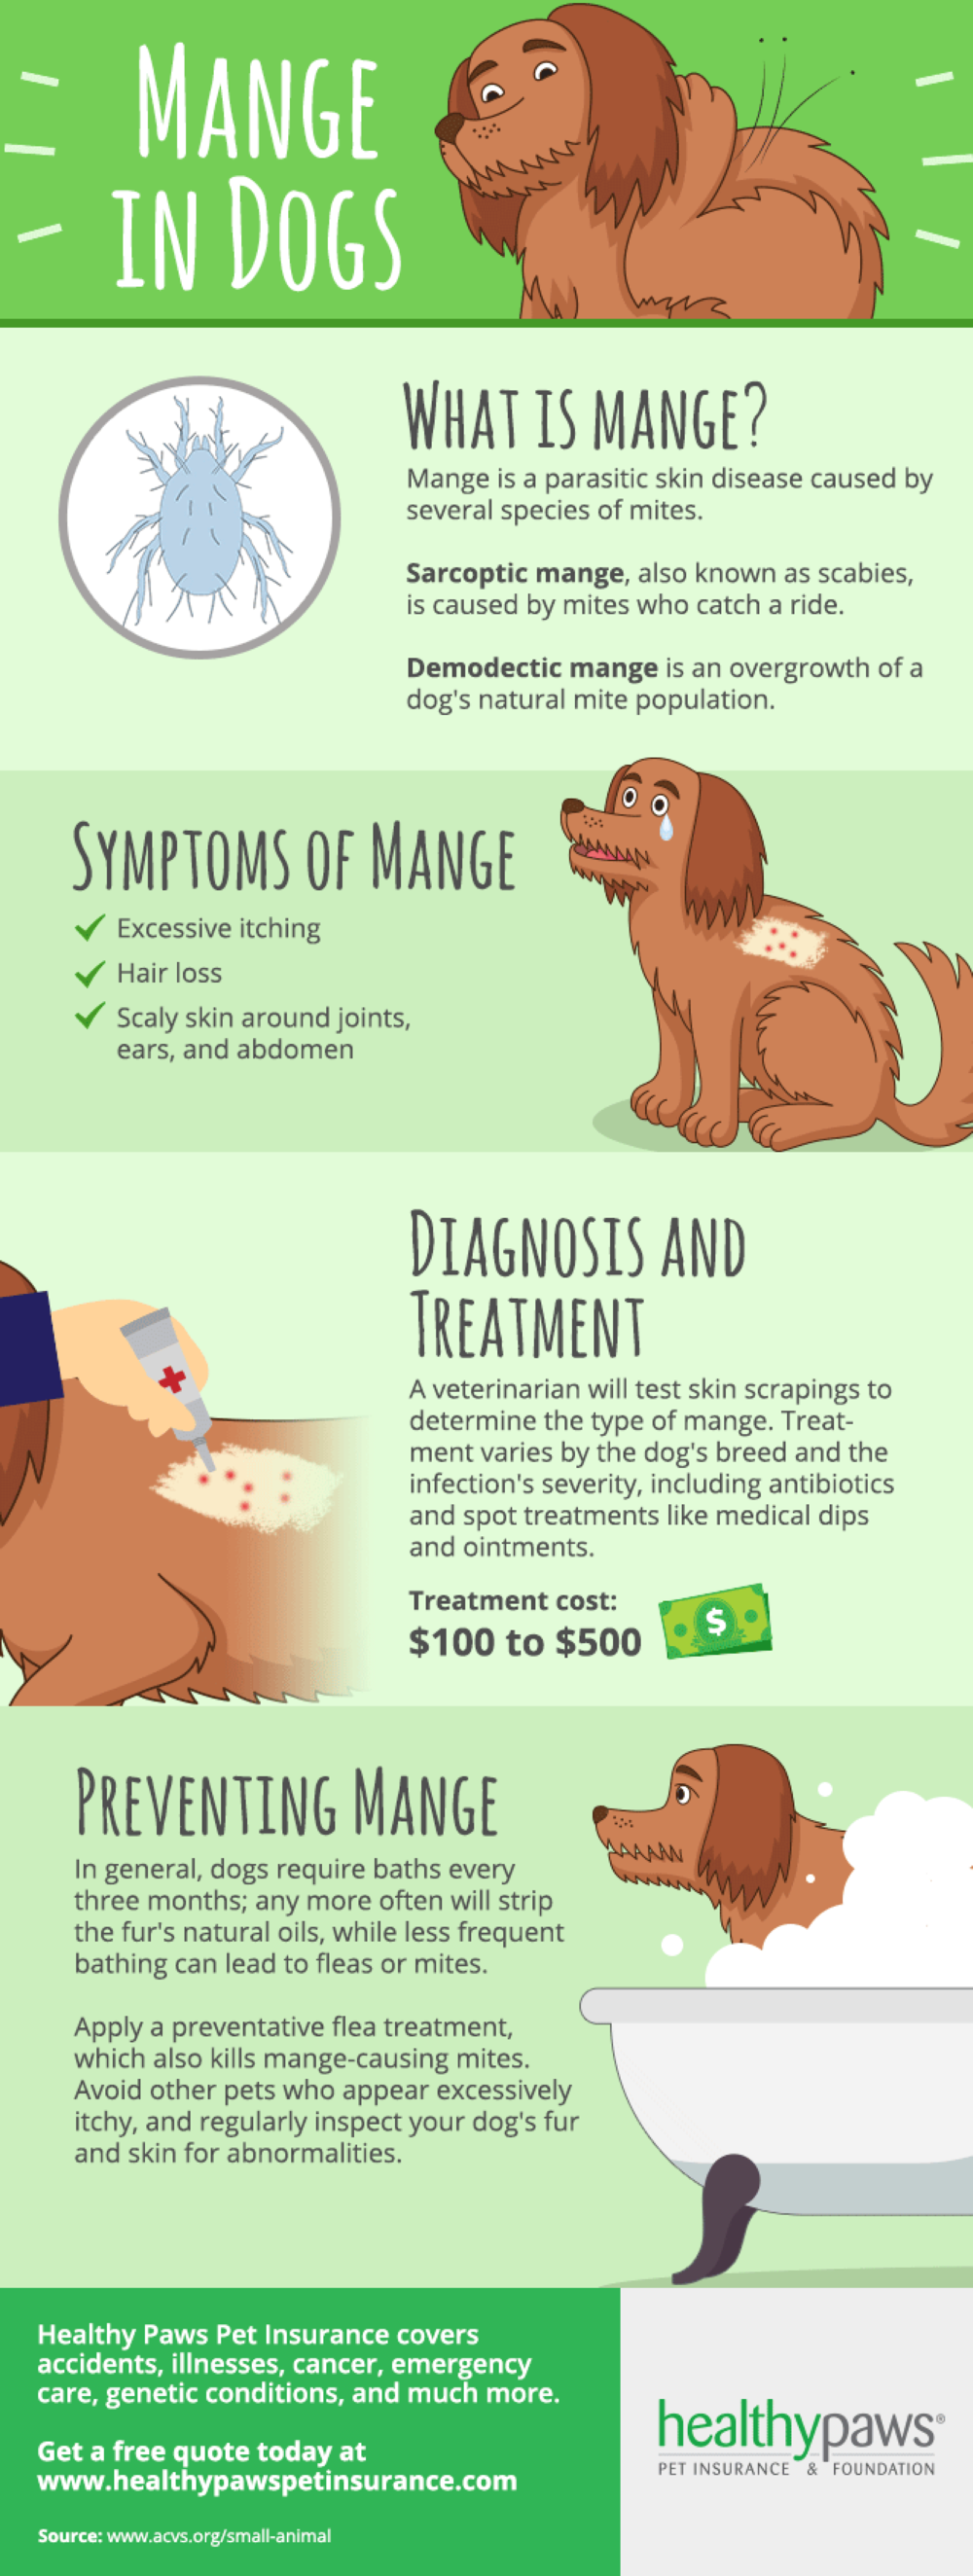 mange in dogs infographic